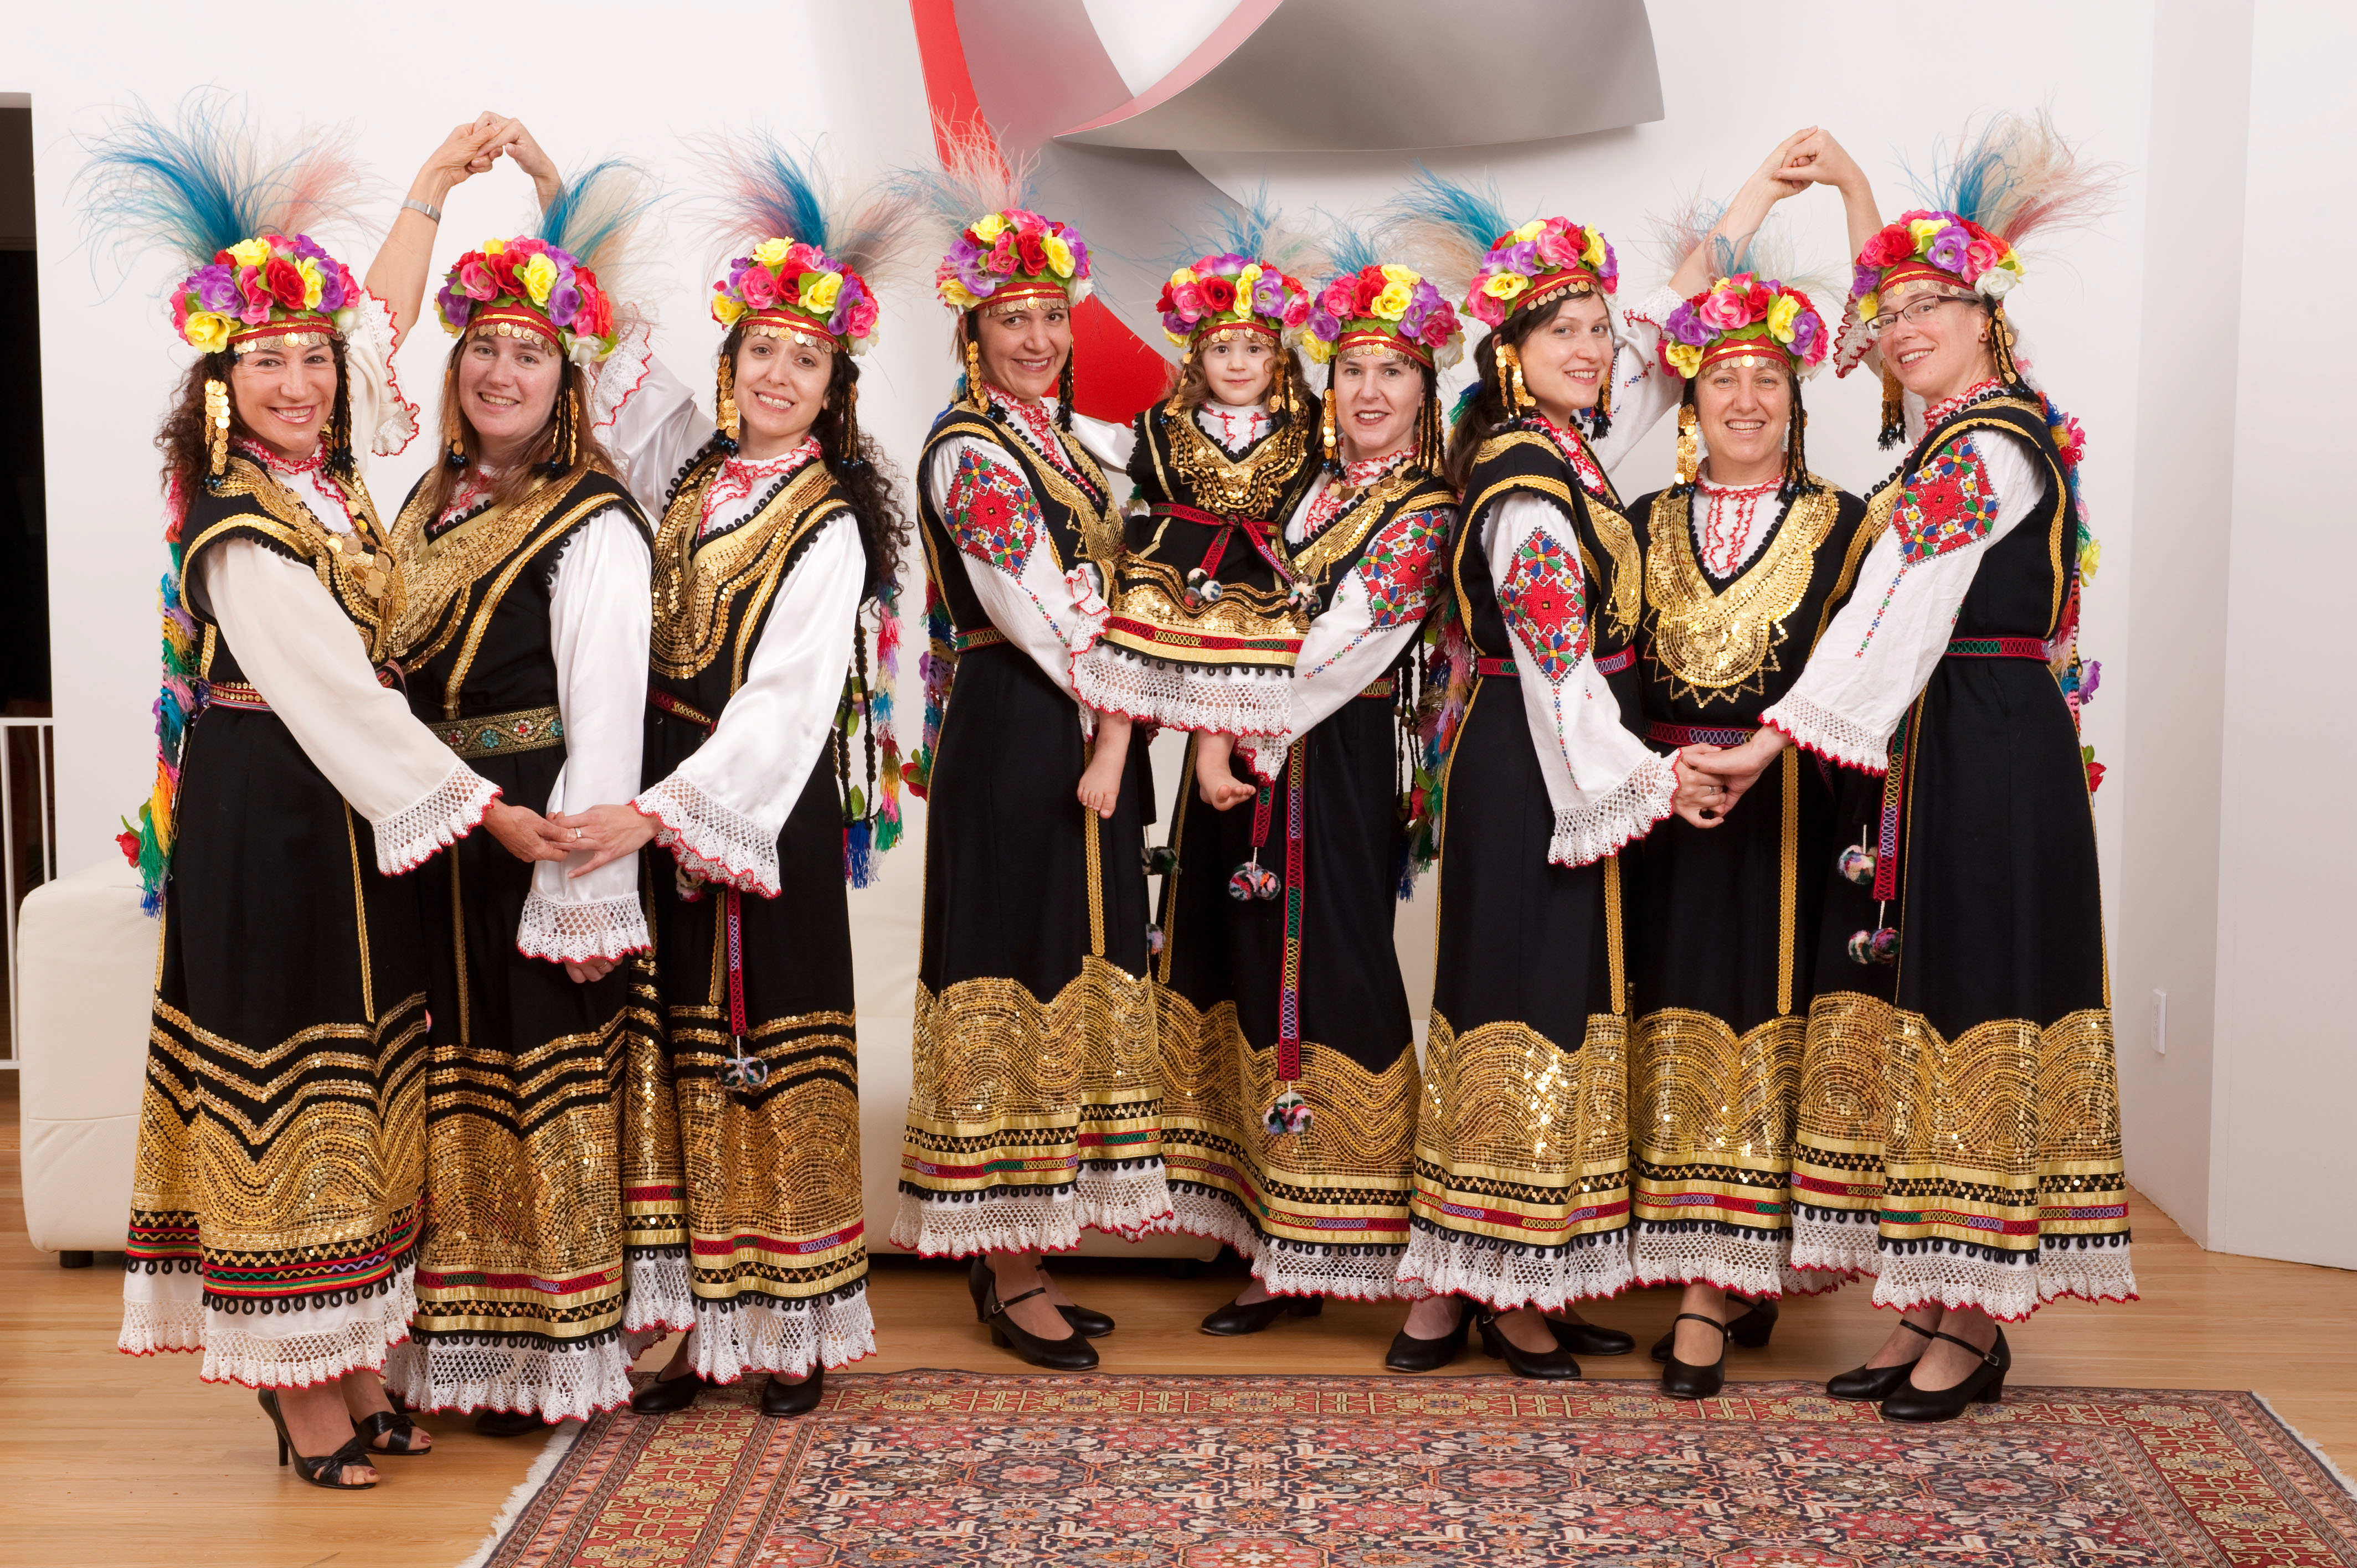 bulgarian customs and traditions Bulgarian cultural center aims to unite bulgarian communities in the tri-state  region and all those who have special interests in bulgarian culture our vision is .